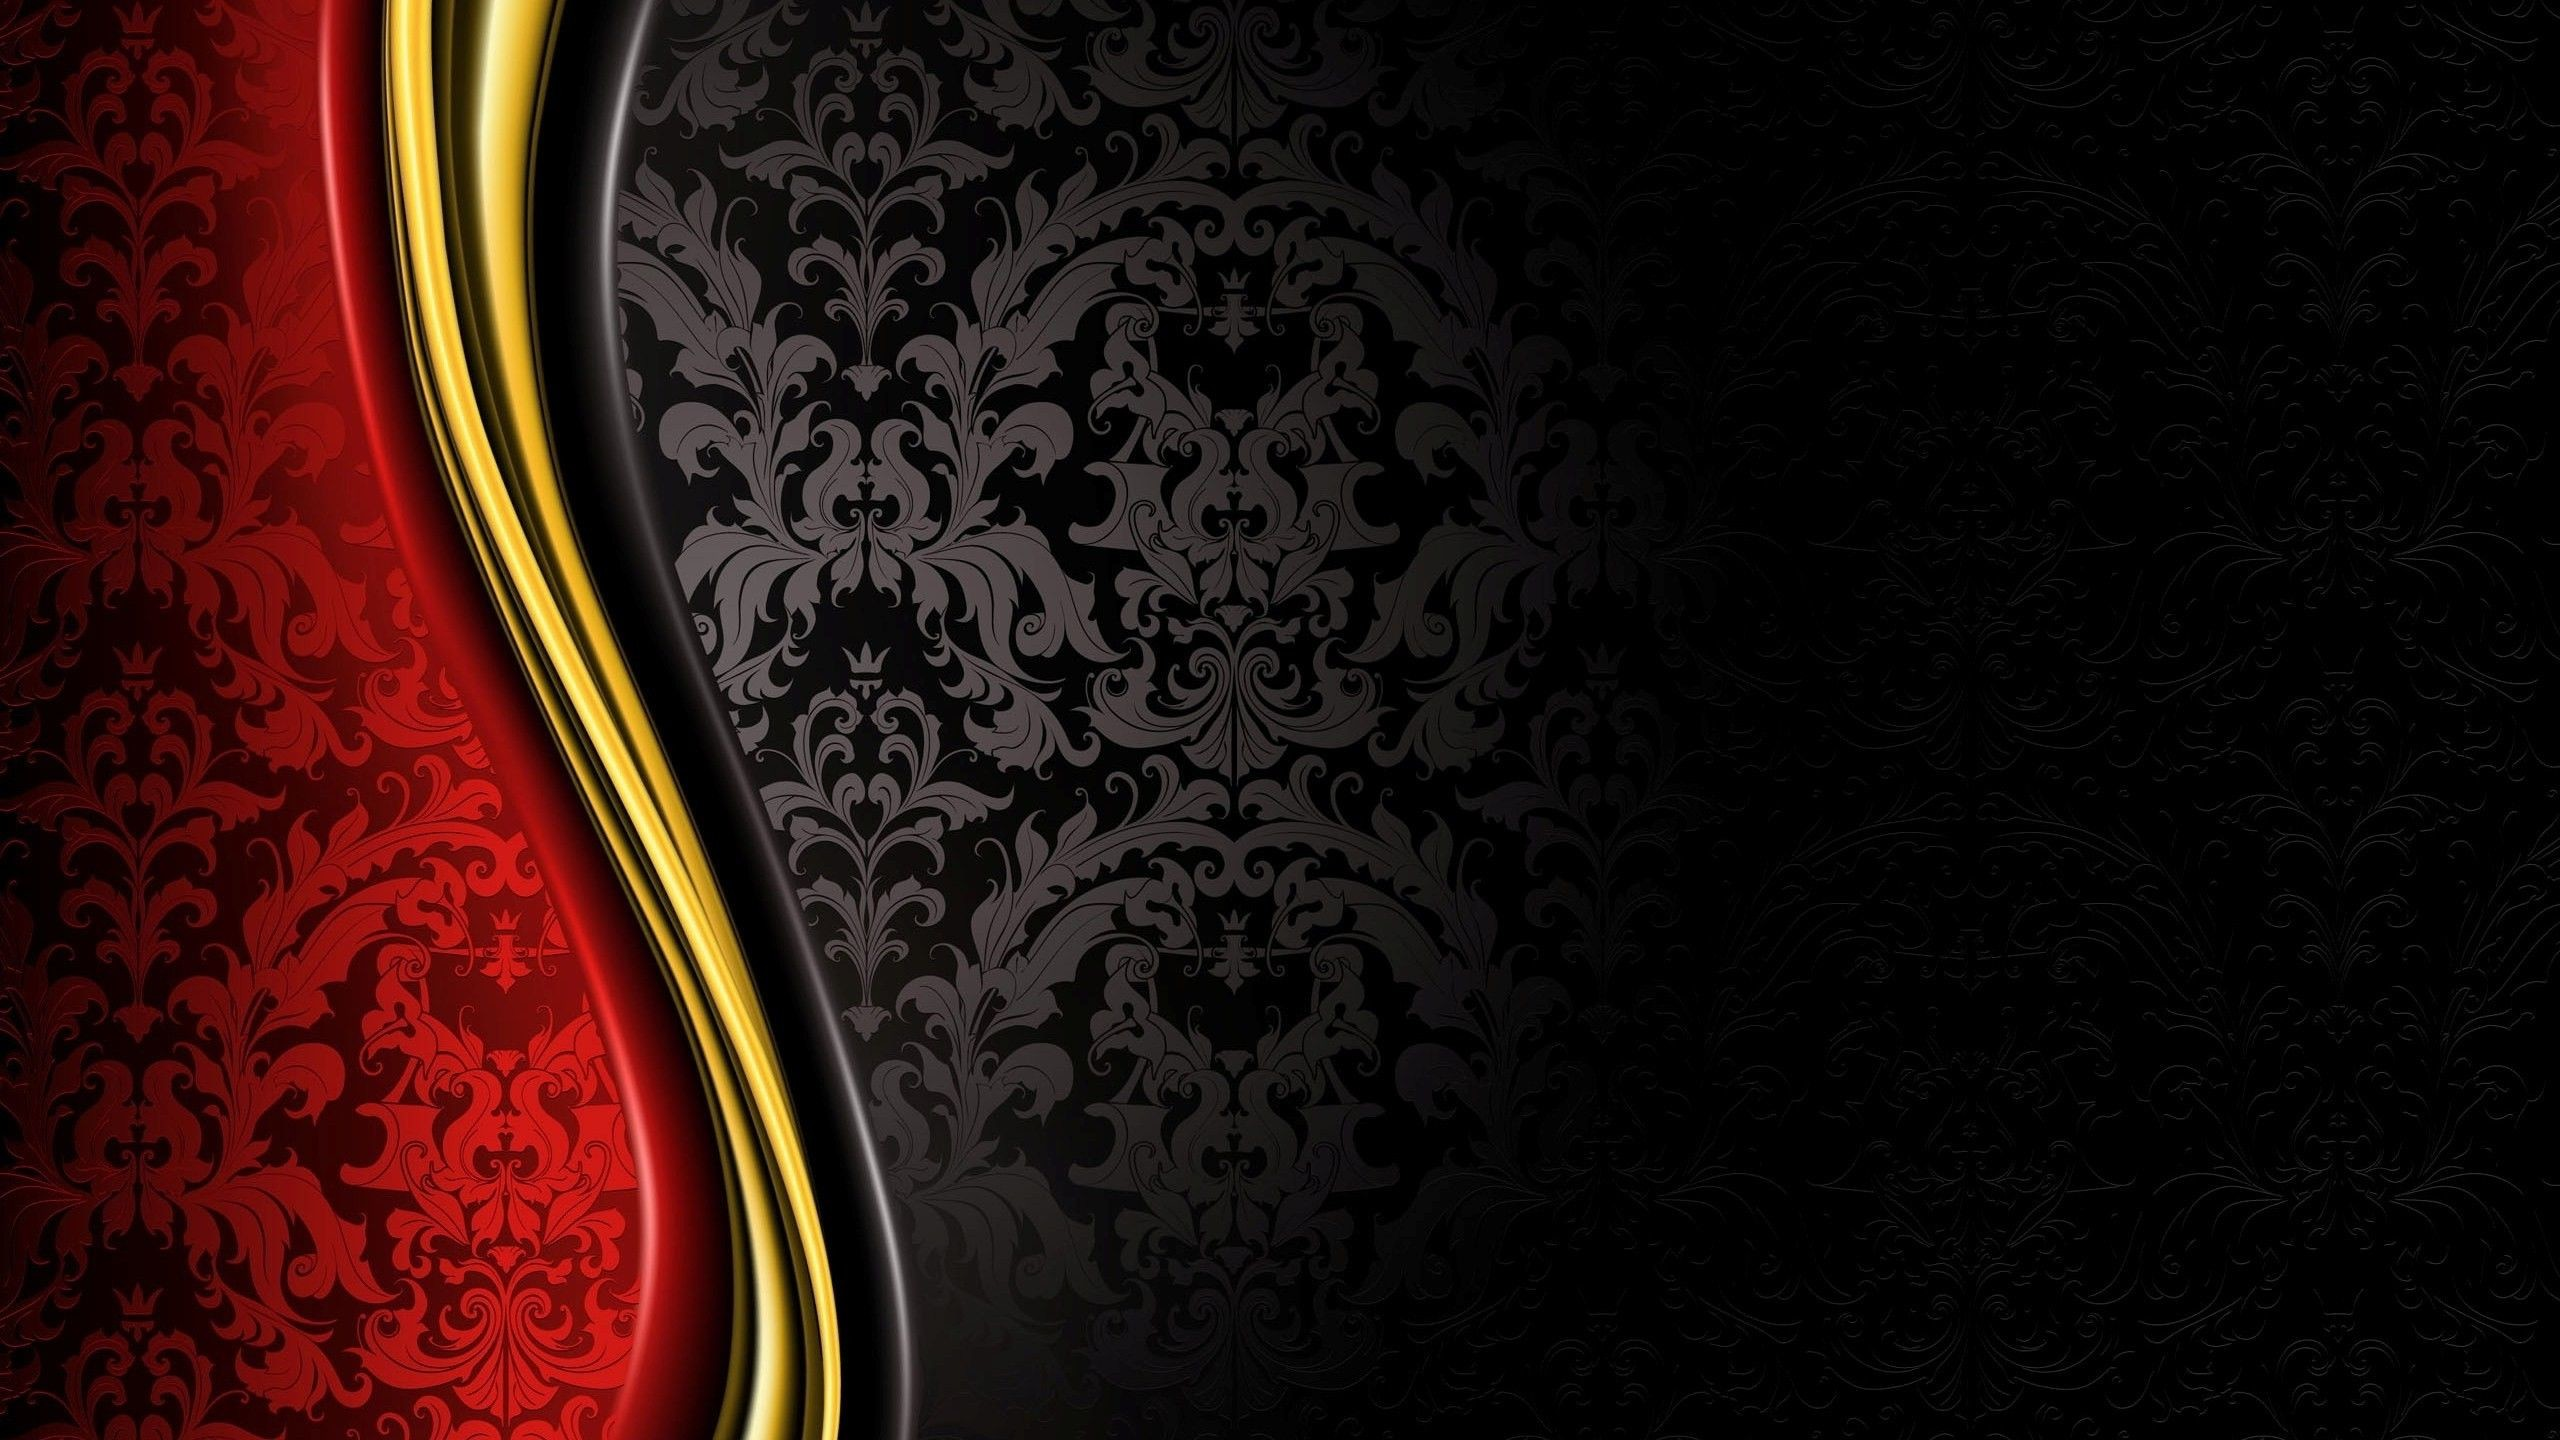 2560x1440 luxury, Royal, Grand, Black, Gold, Red, Abstract Wallpapers HD